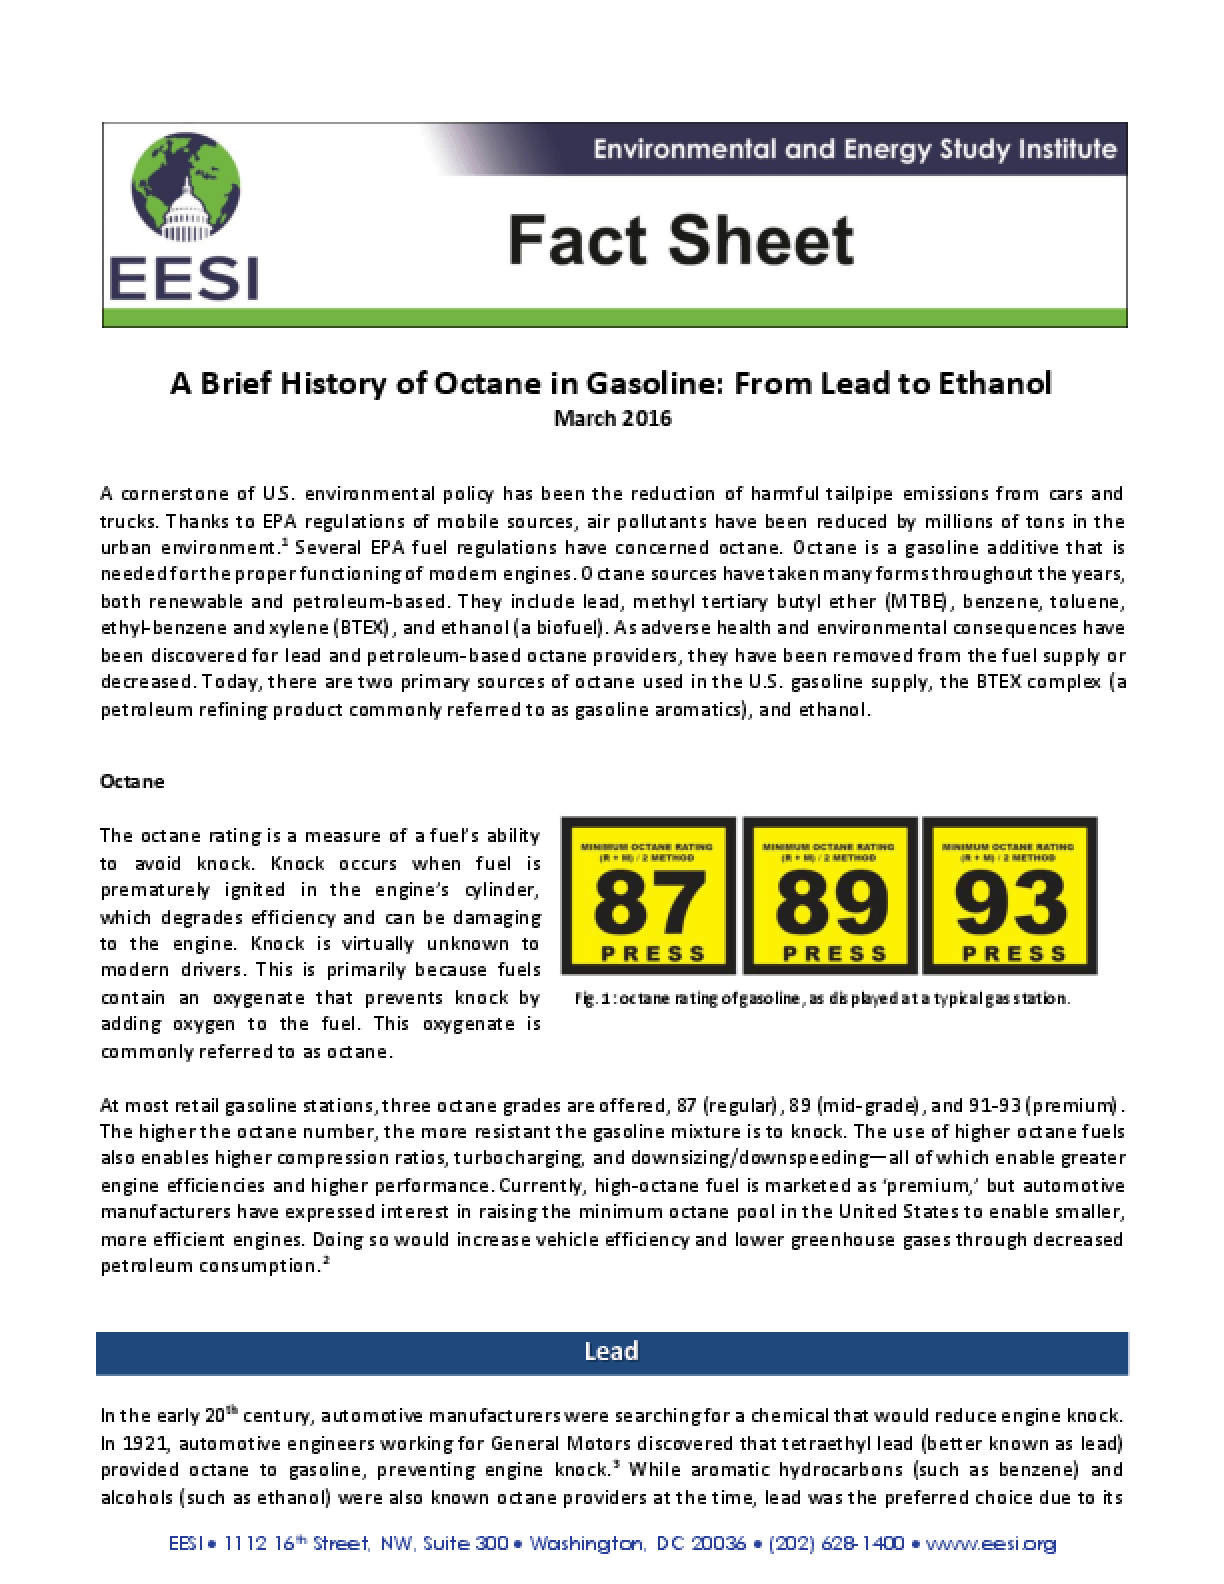 Fact Sheet: A Brief History of Octane in Gasoline, From Lead to Ethanol